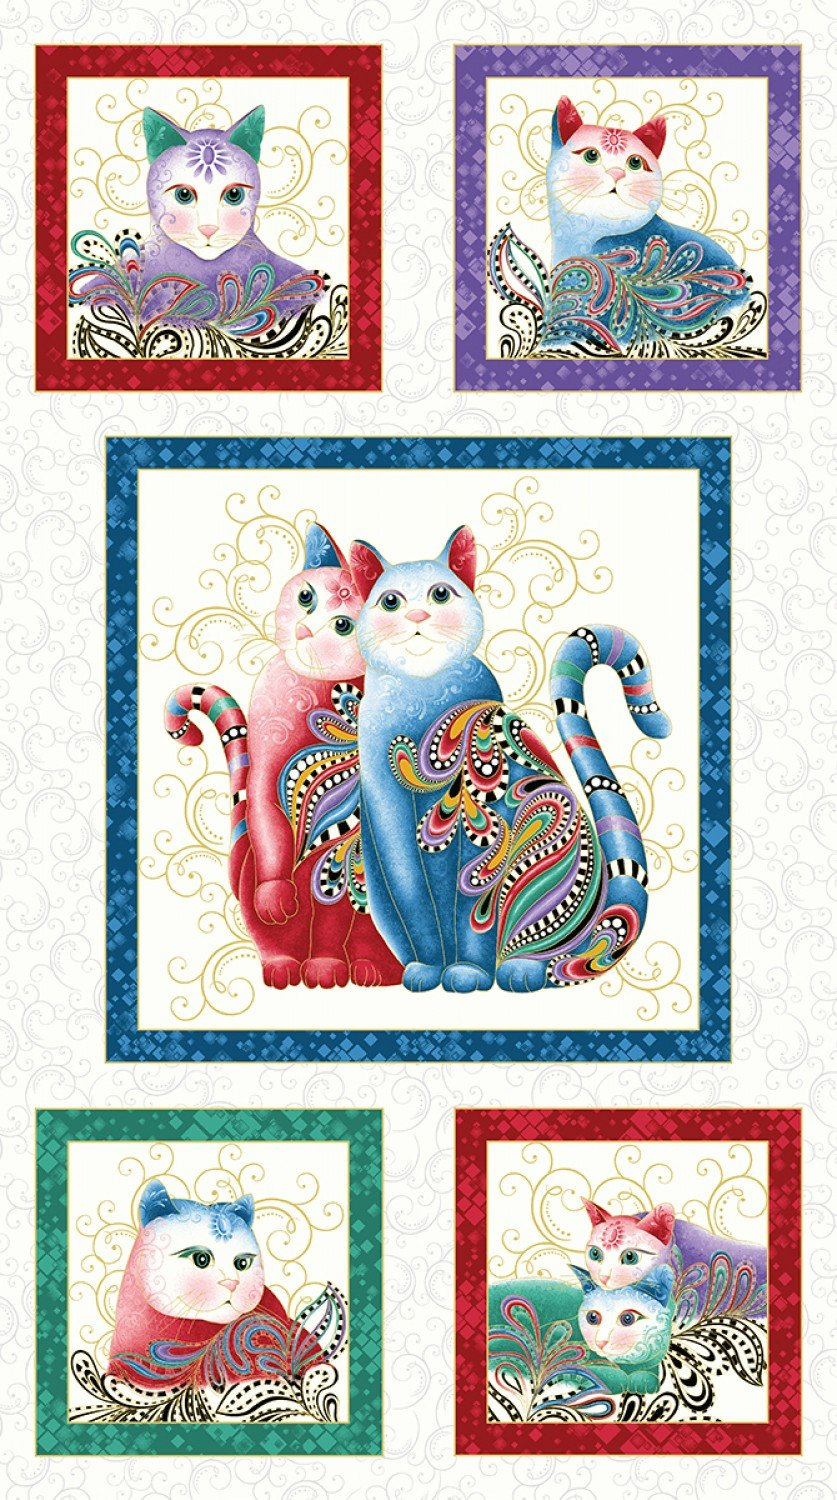 Purr Fect Together Blocks on White - Cat-I-Tude 2 Panel